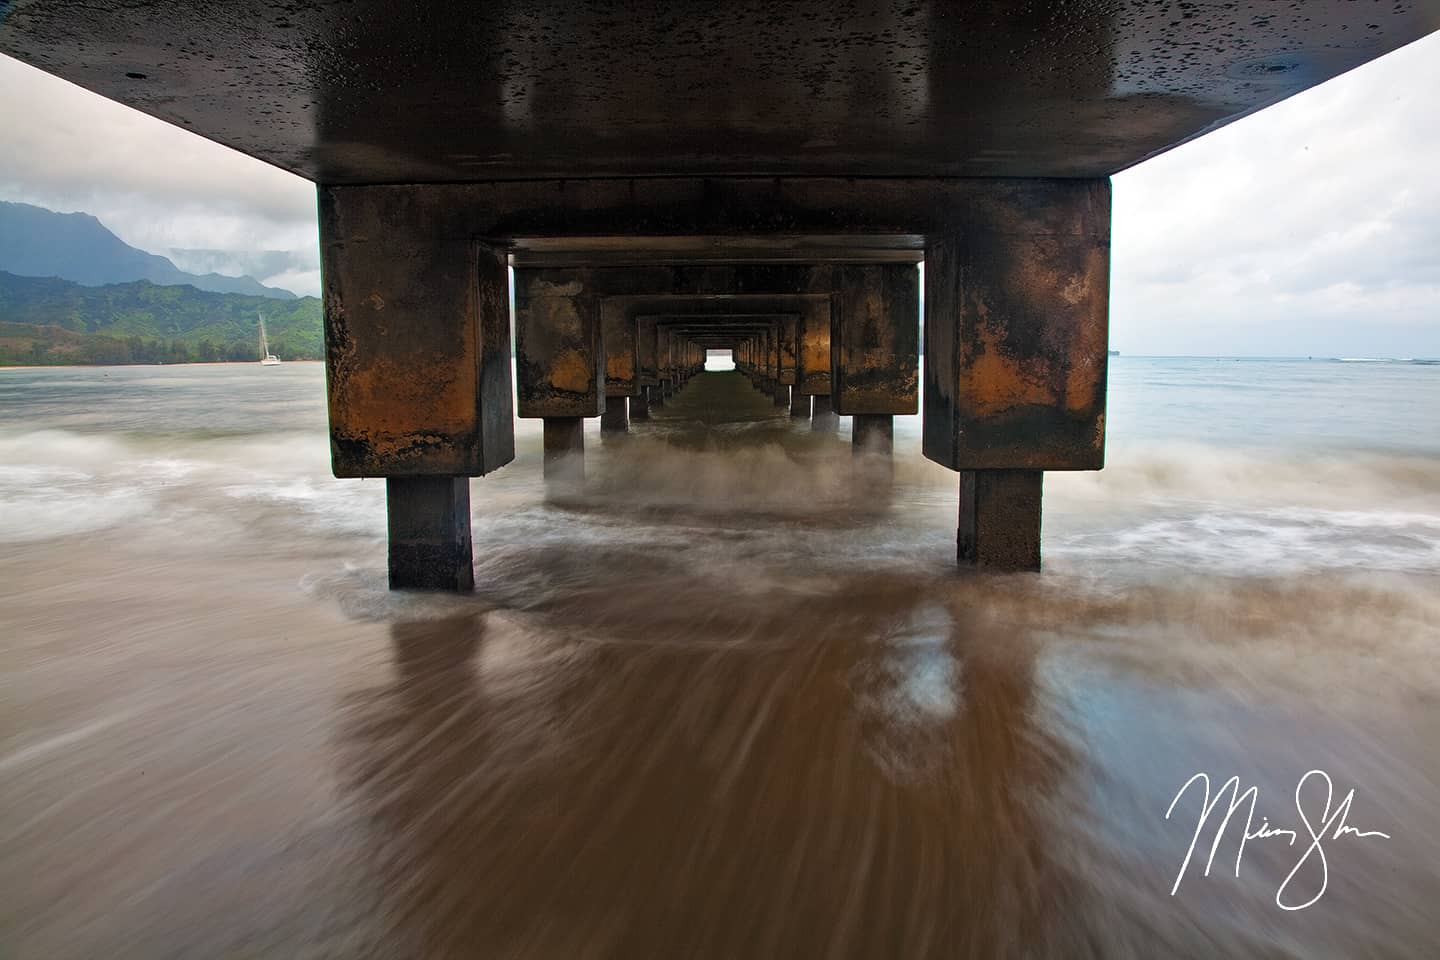 Under the Hanalei Pier